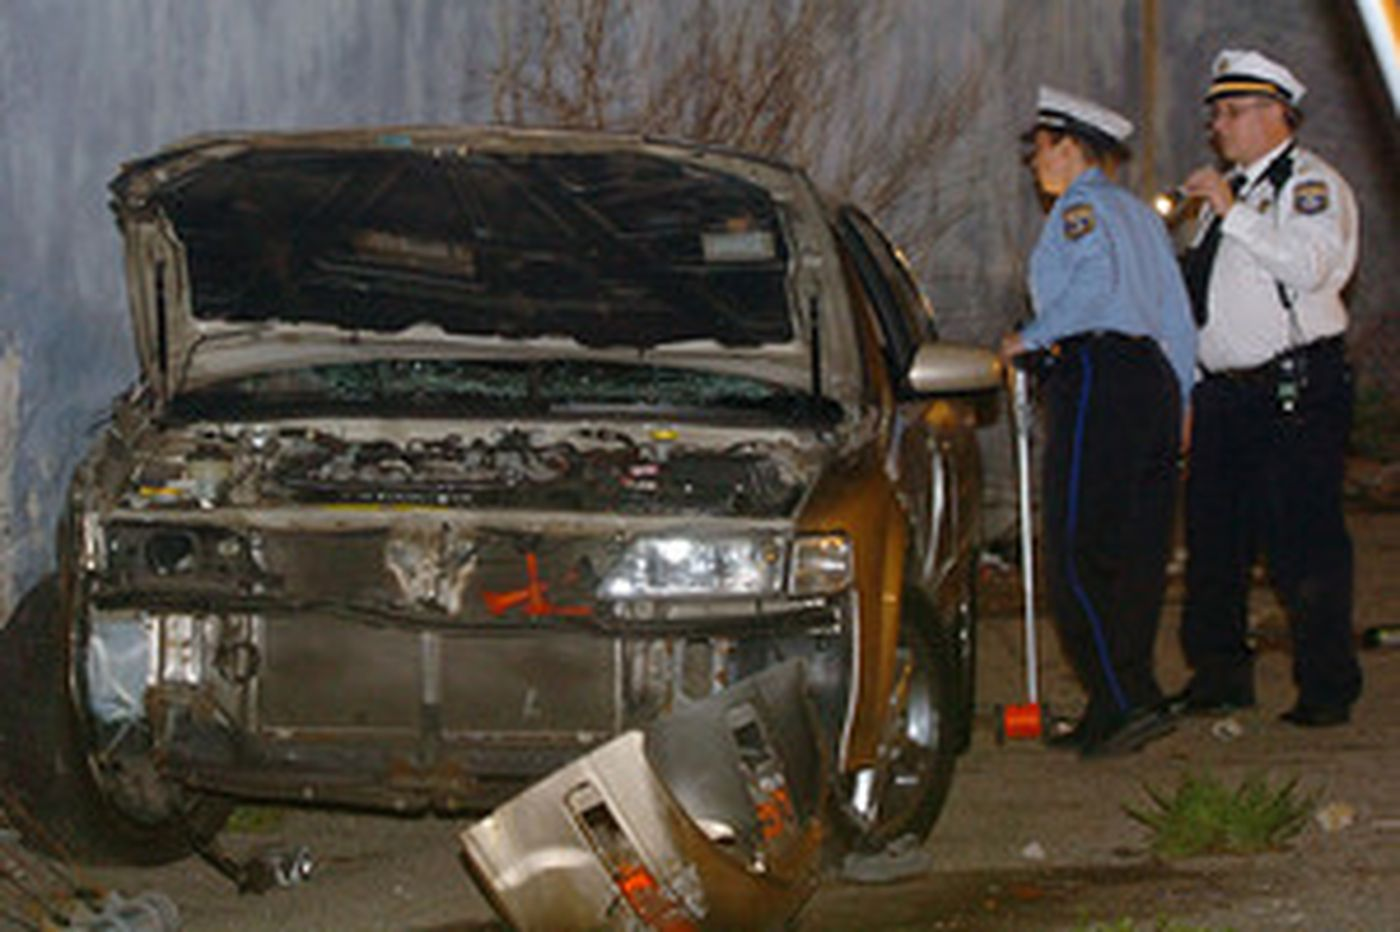 Cops: Love triangle led woman to plow car into 3 in N. Phila.